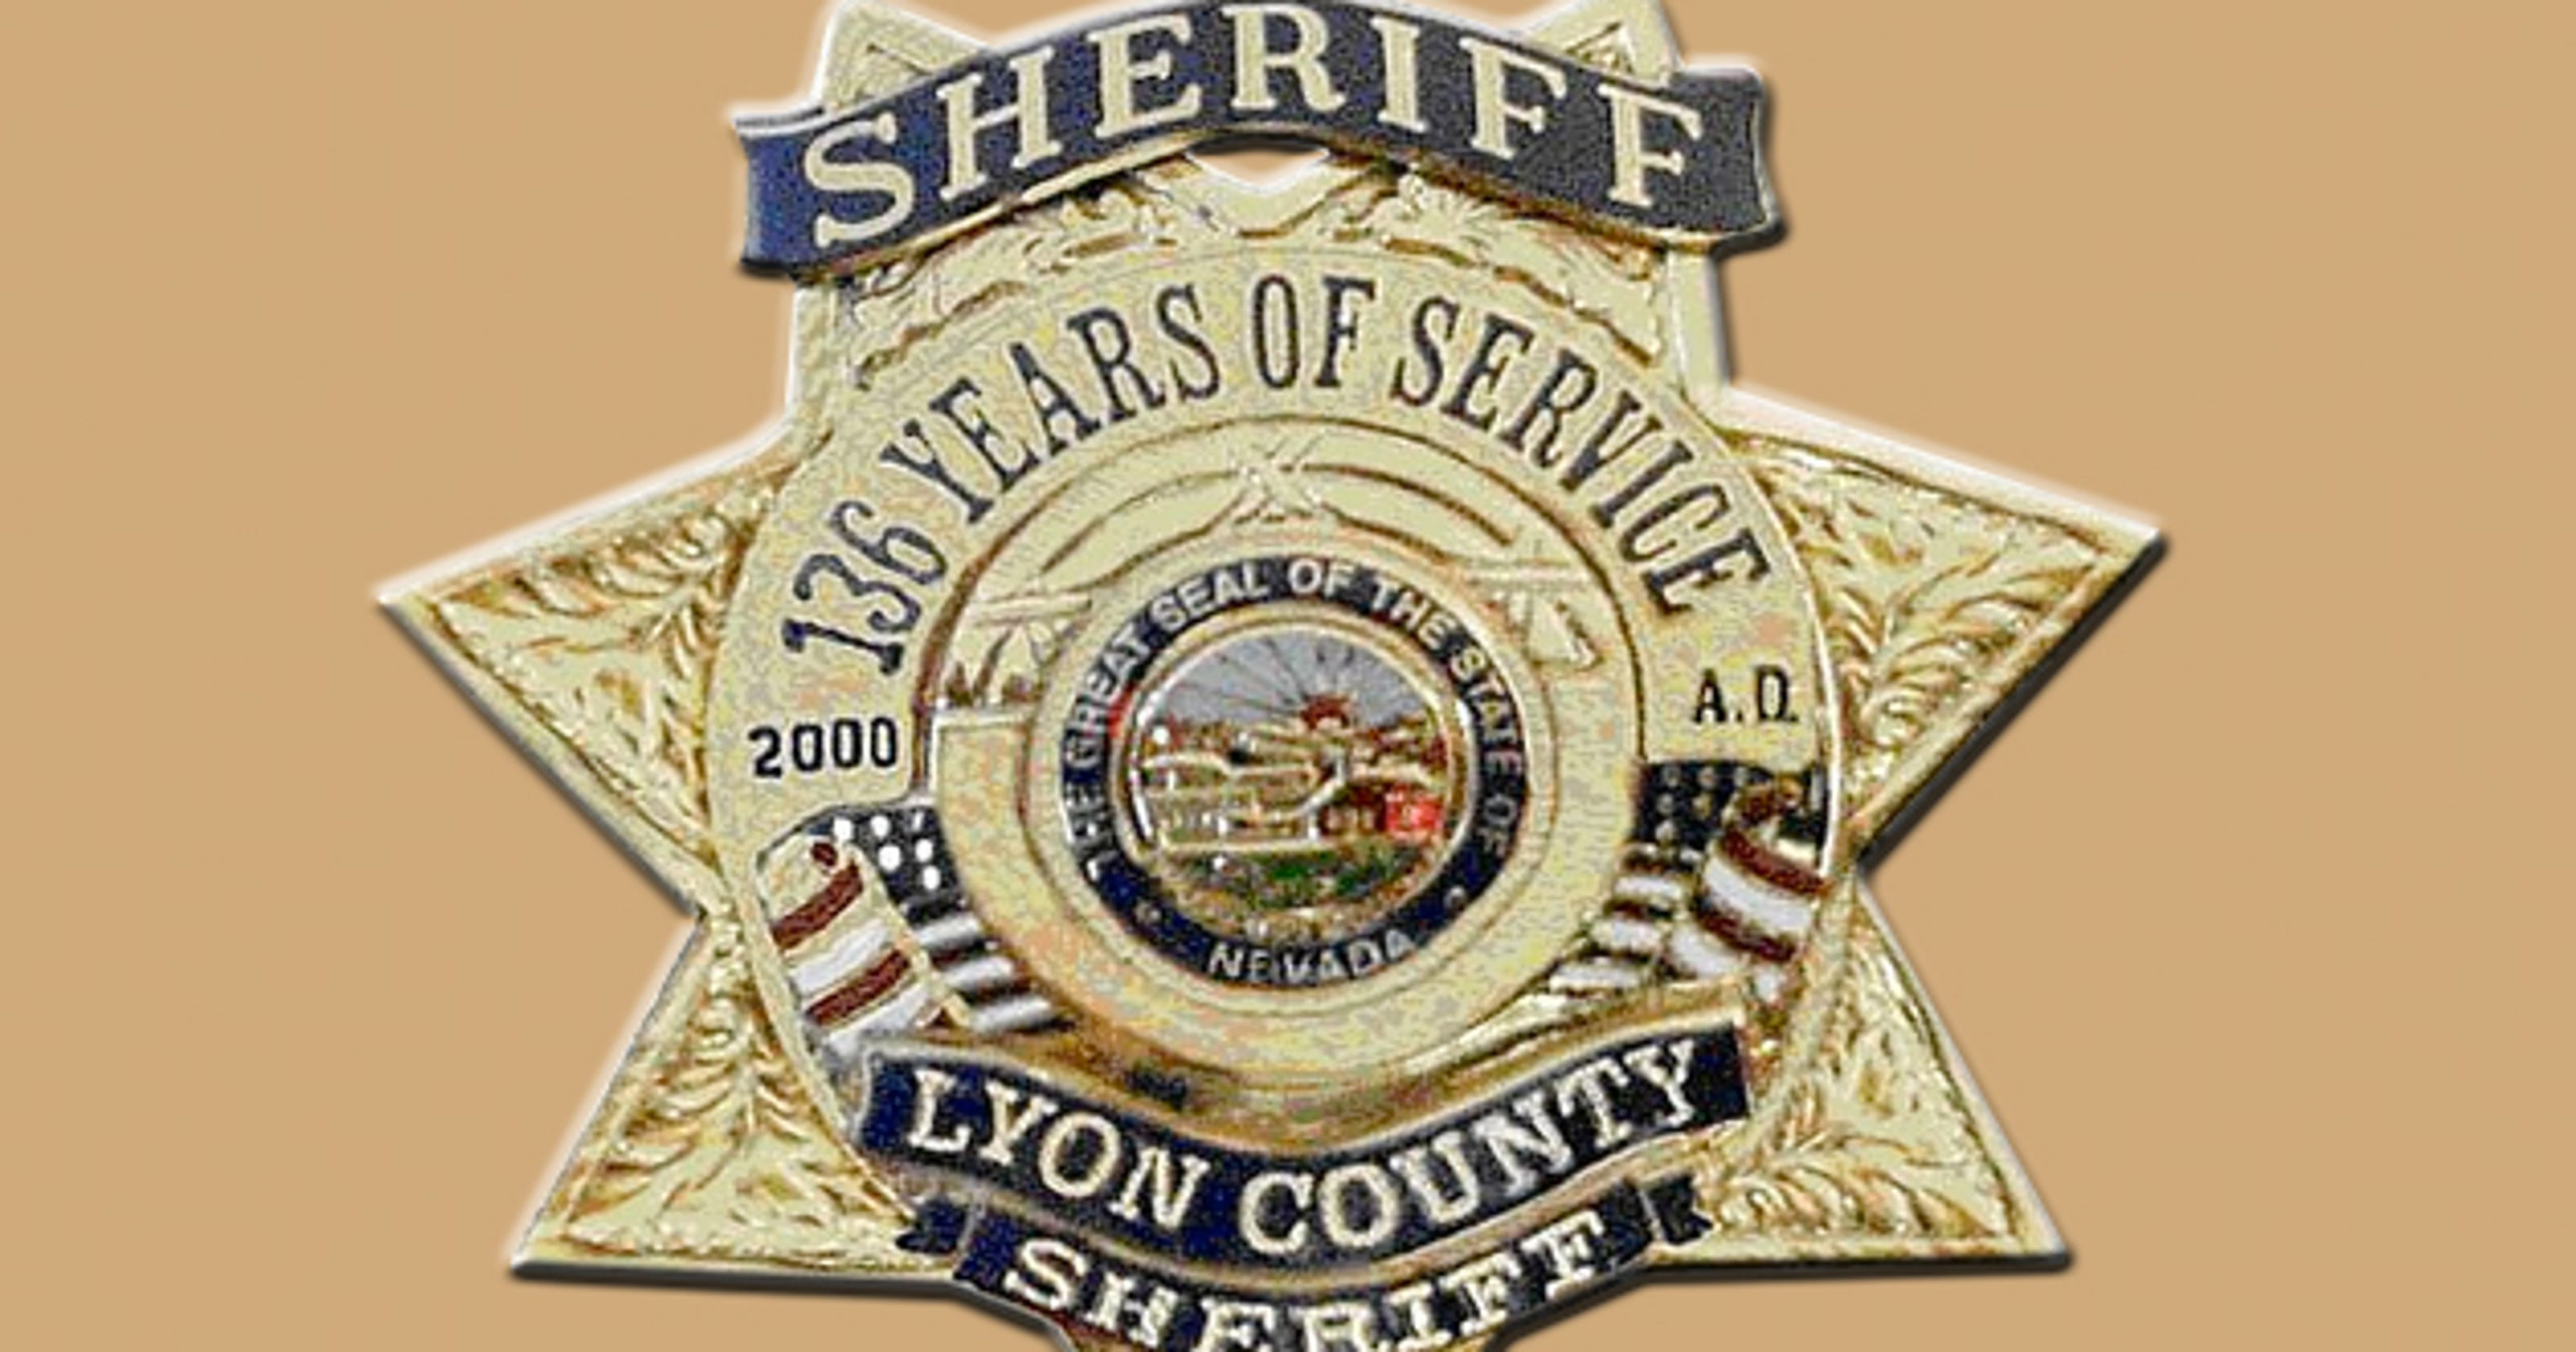 Lyon County Sheriff's Office: 3 found dead at 2 Silver